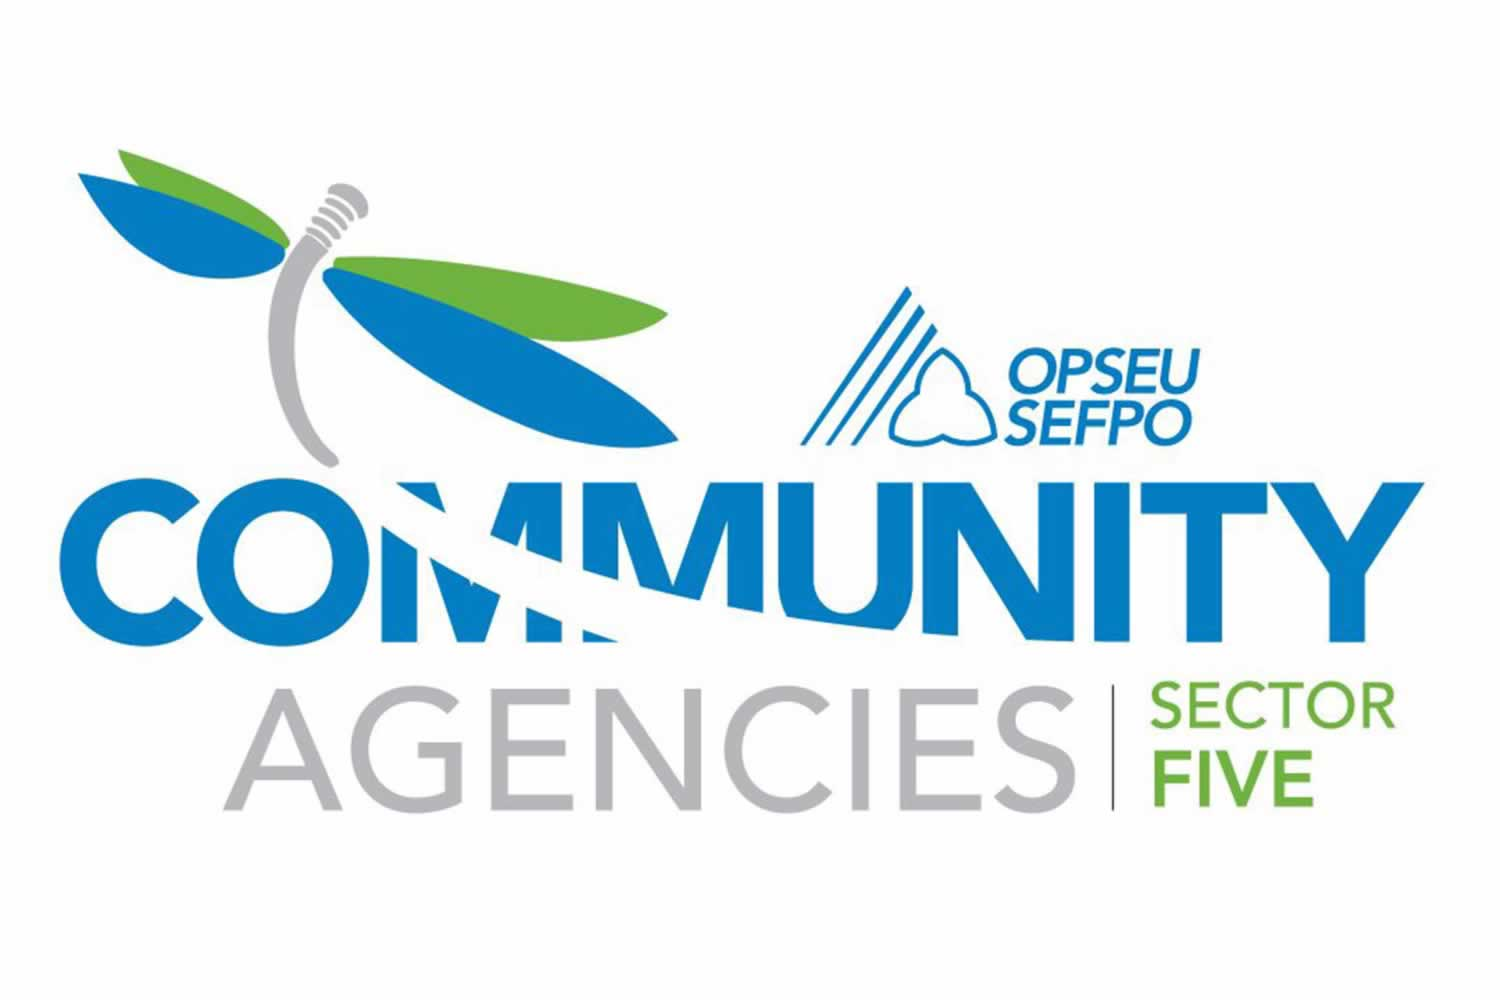 Community Agencies Sector Five logo